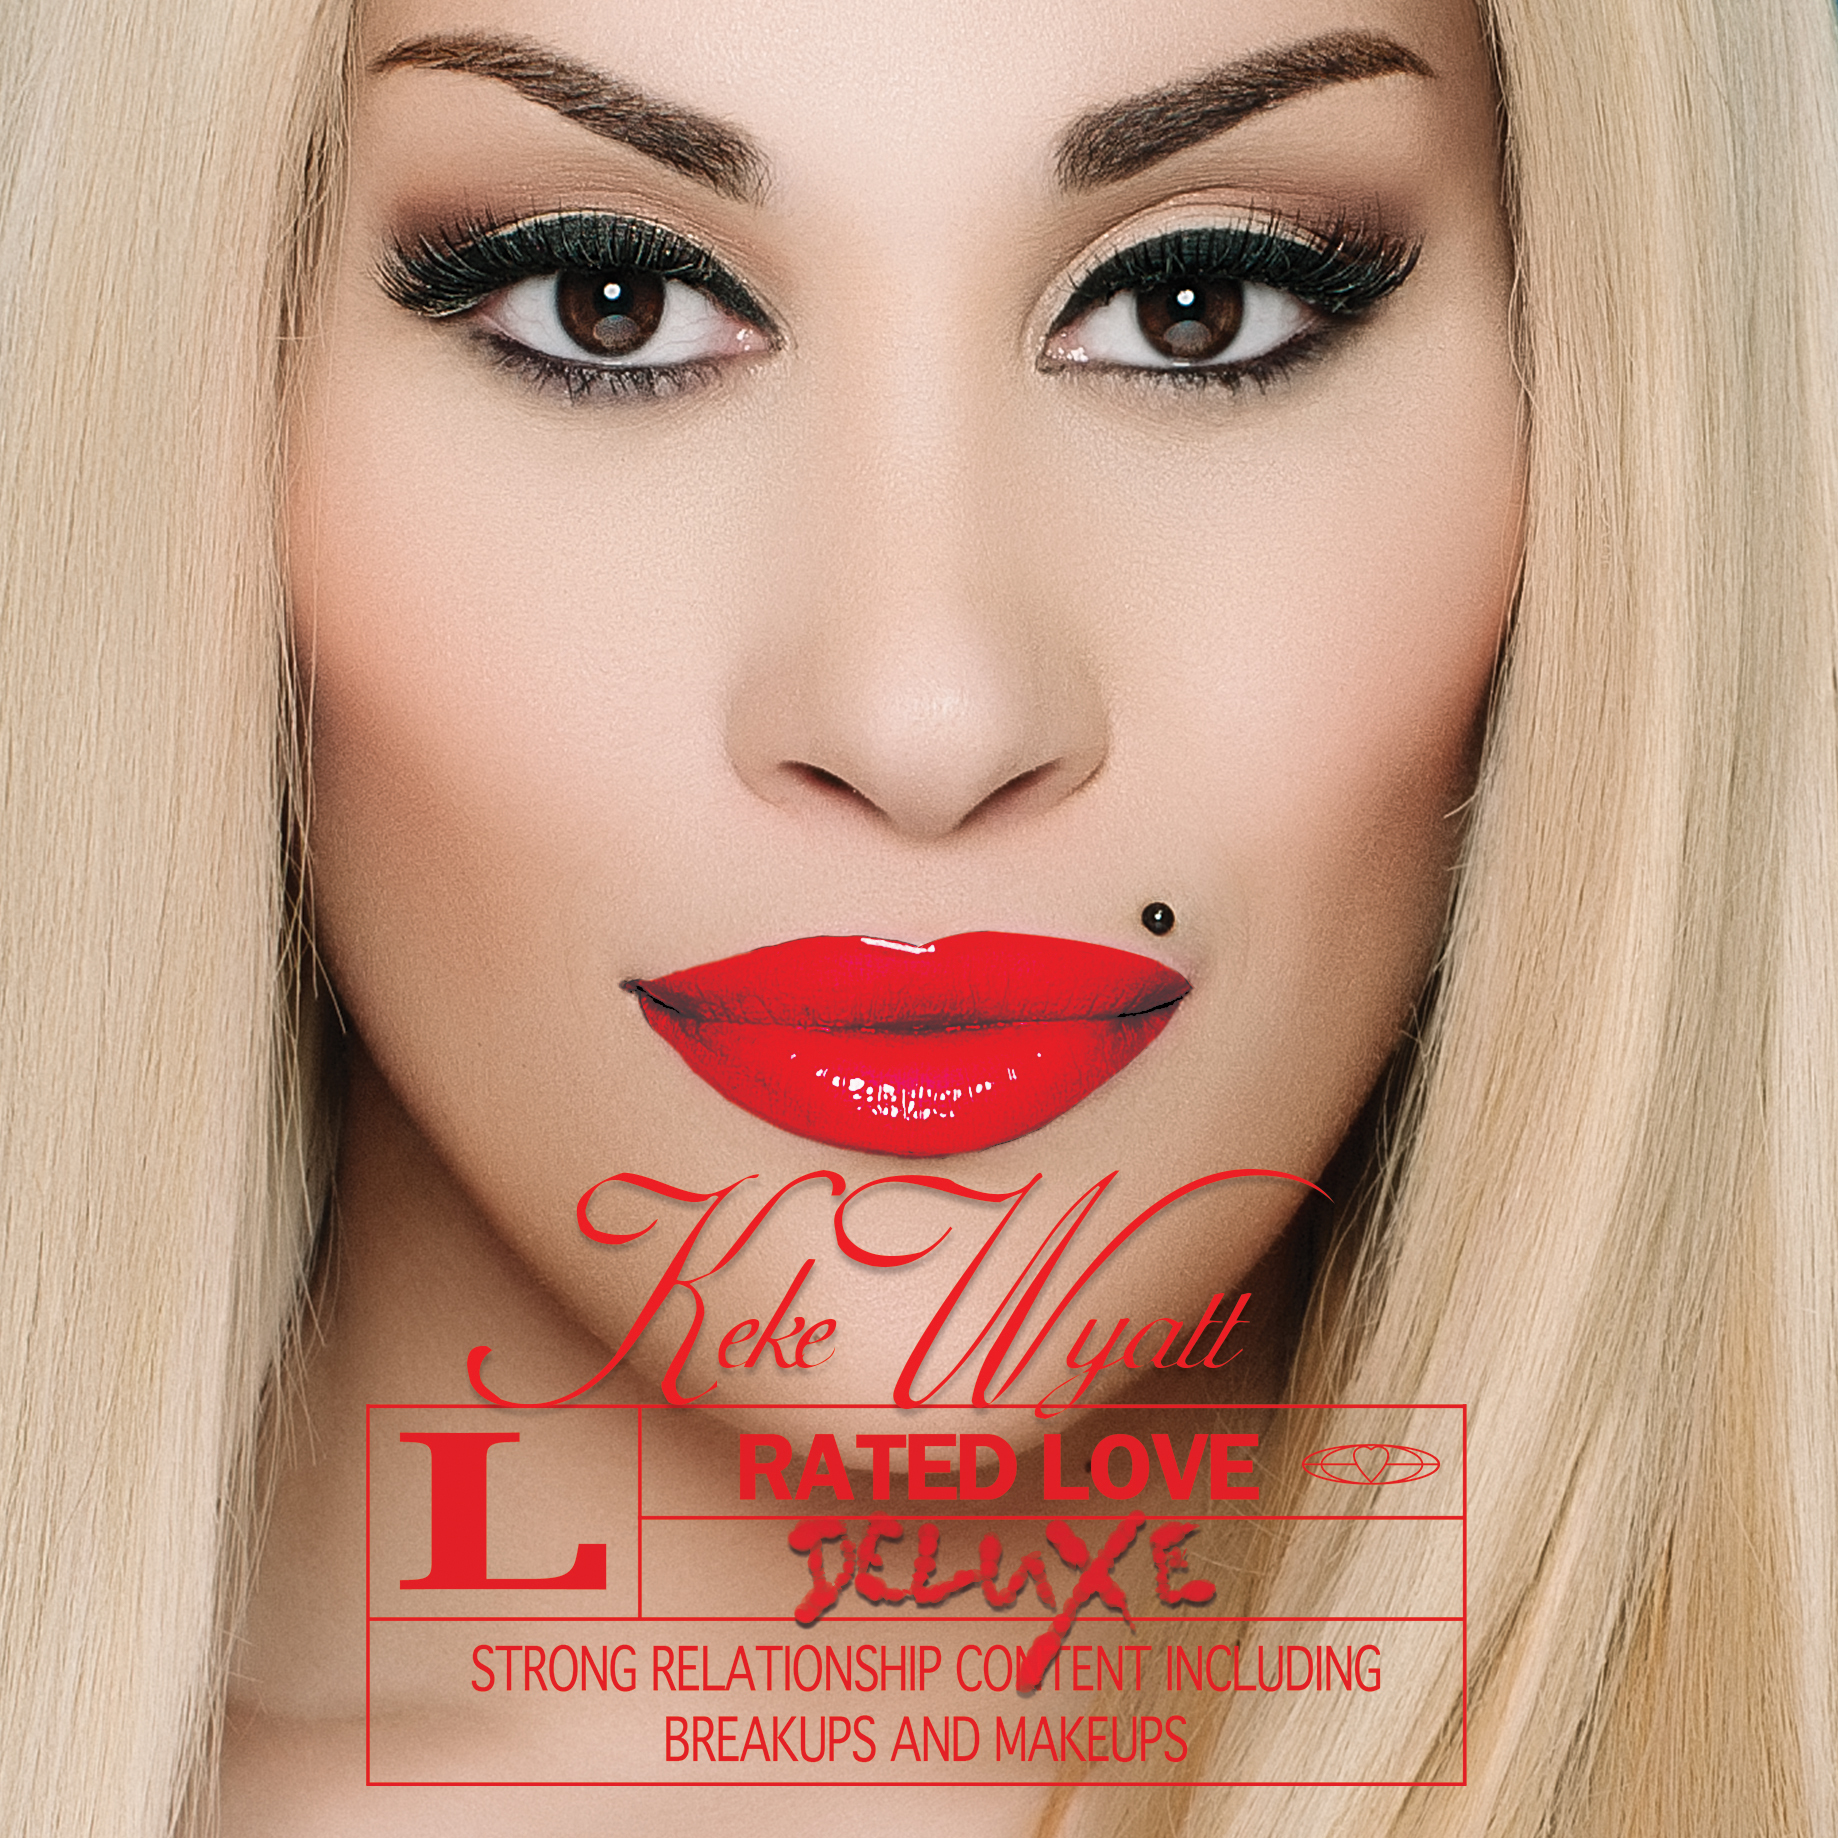 keke-wyatt-rated-love-deluxe